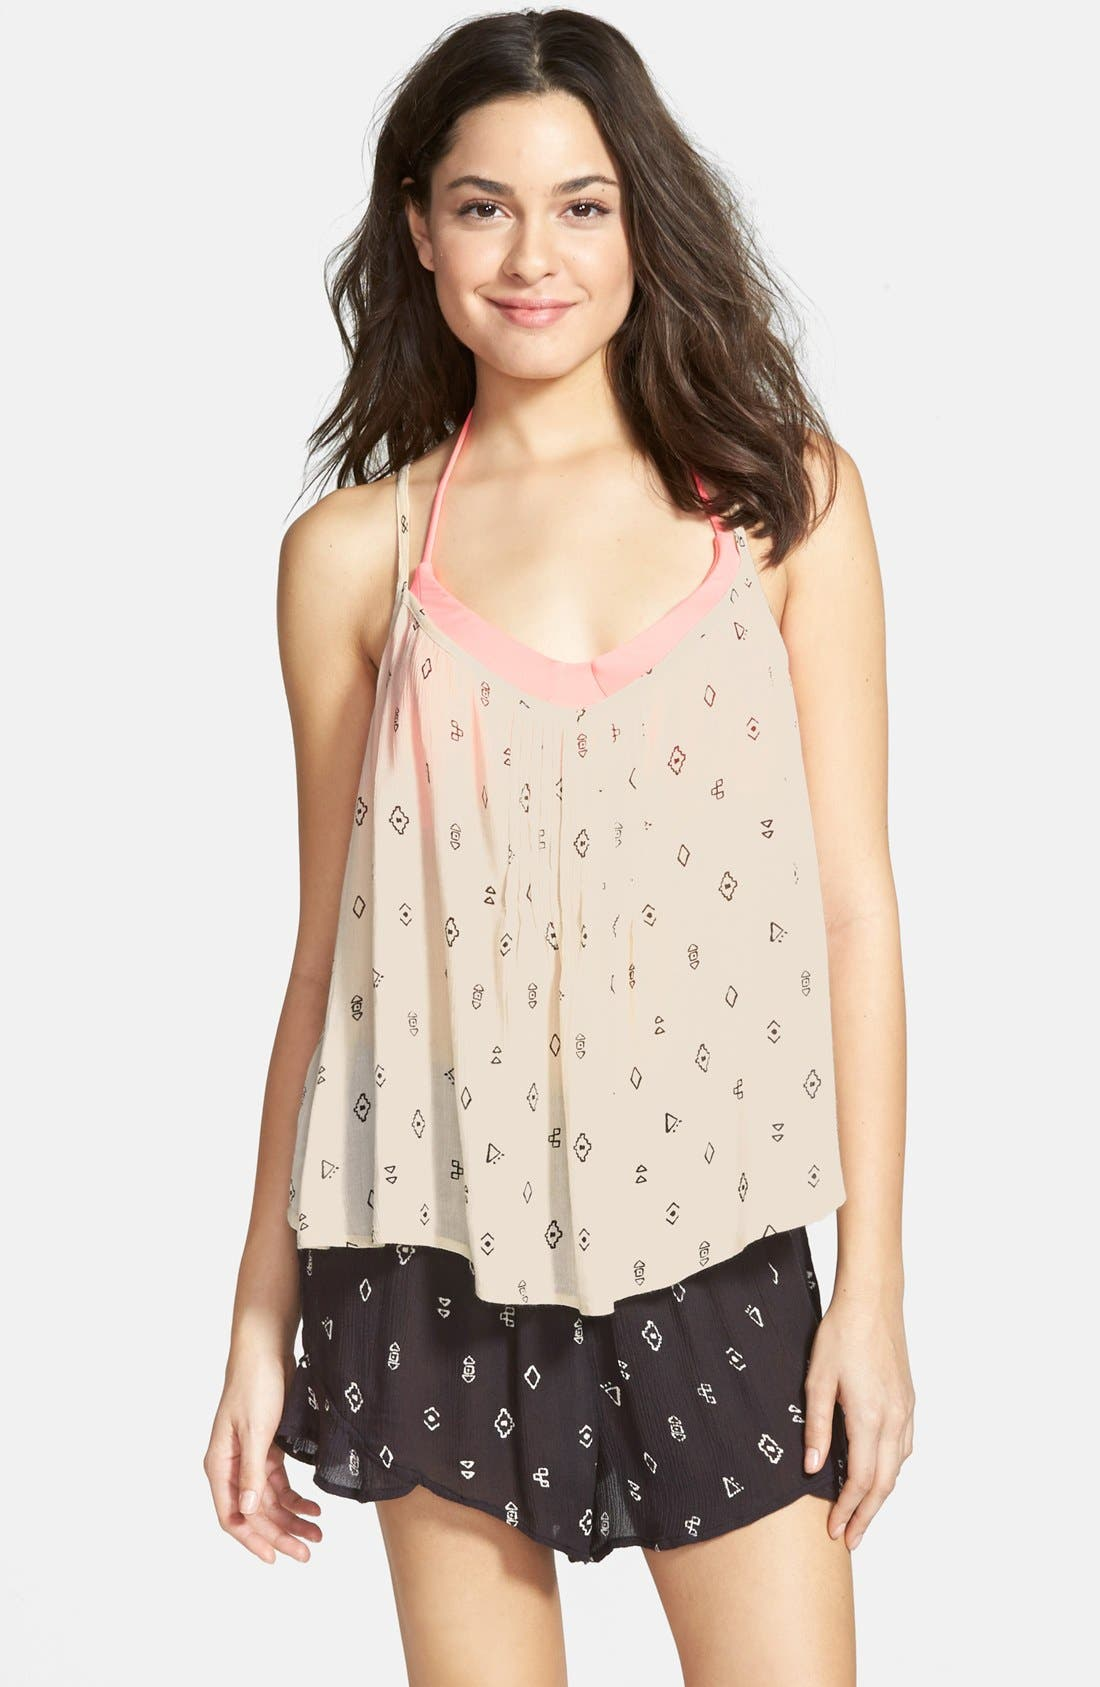 Alternate Image 1 Selected - Billabong 'Day Dreamy' Print Tank